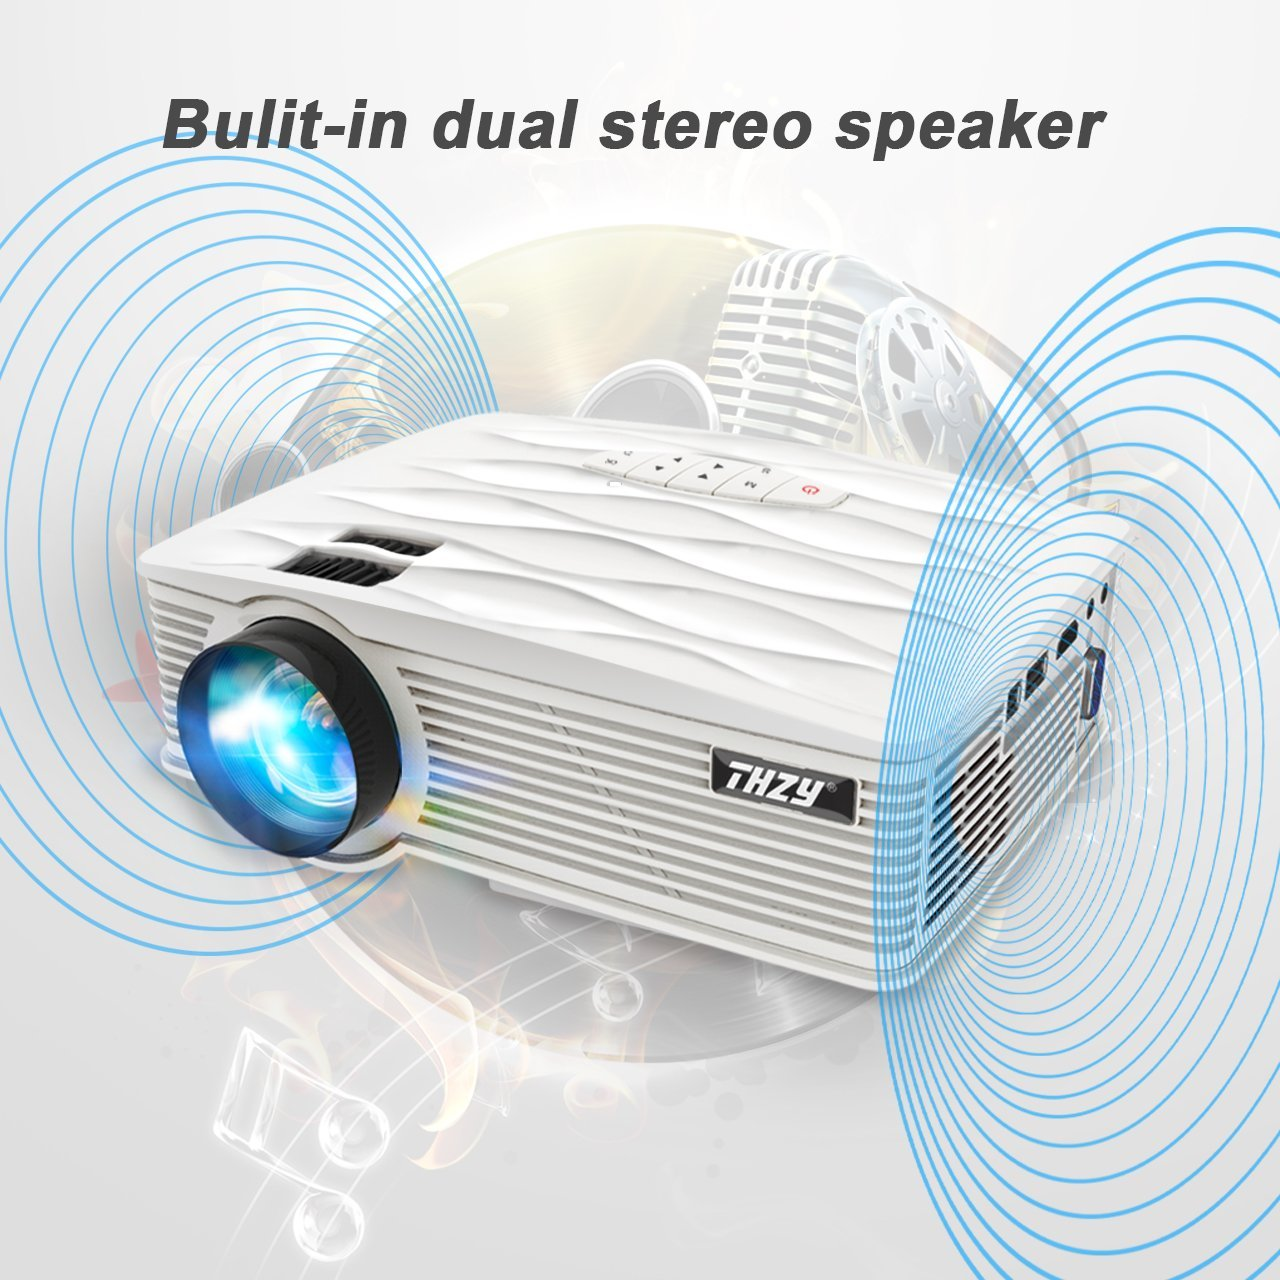 THZY Mini Projector 2200 Lumens Portable Video Projector,50000 Hours Multimedia Home Theater Movie Projector 1080P Support,Compatible with Amazon Fire TV Stick HDMI,VGA,USB,AV,Laptop,Smartphone by THZY (Image #6)